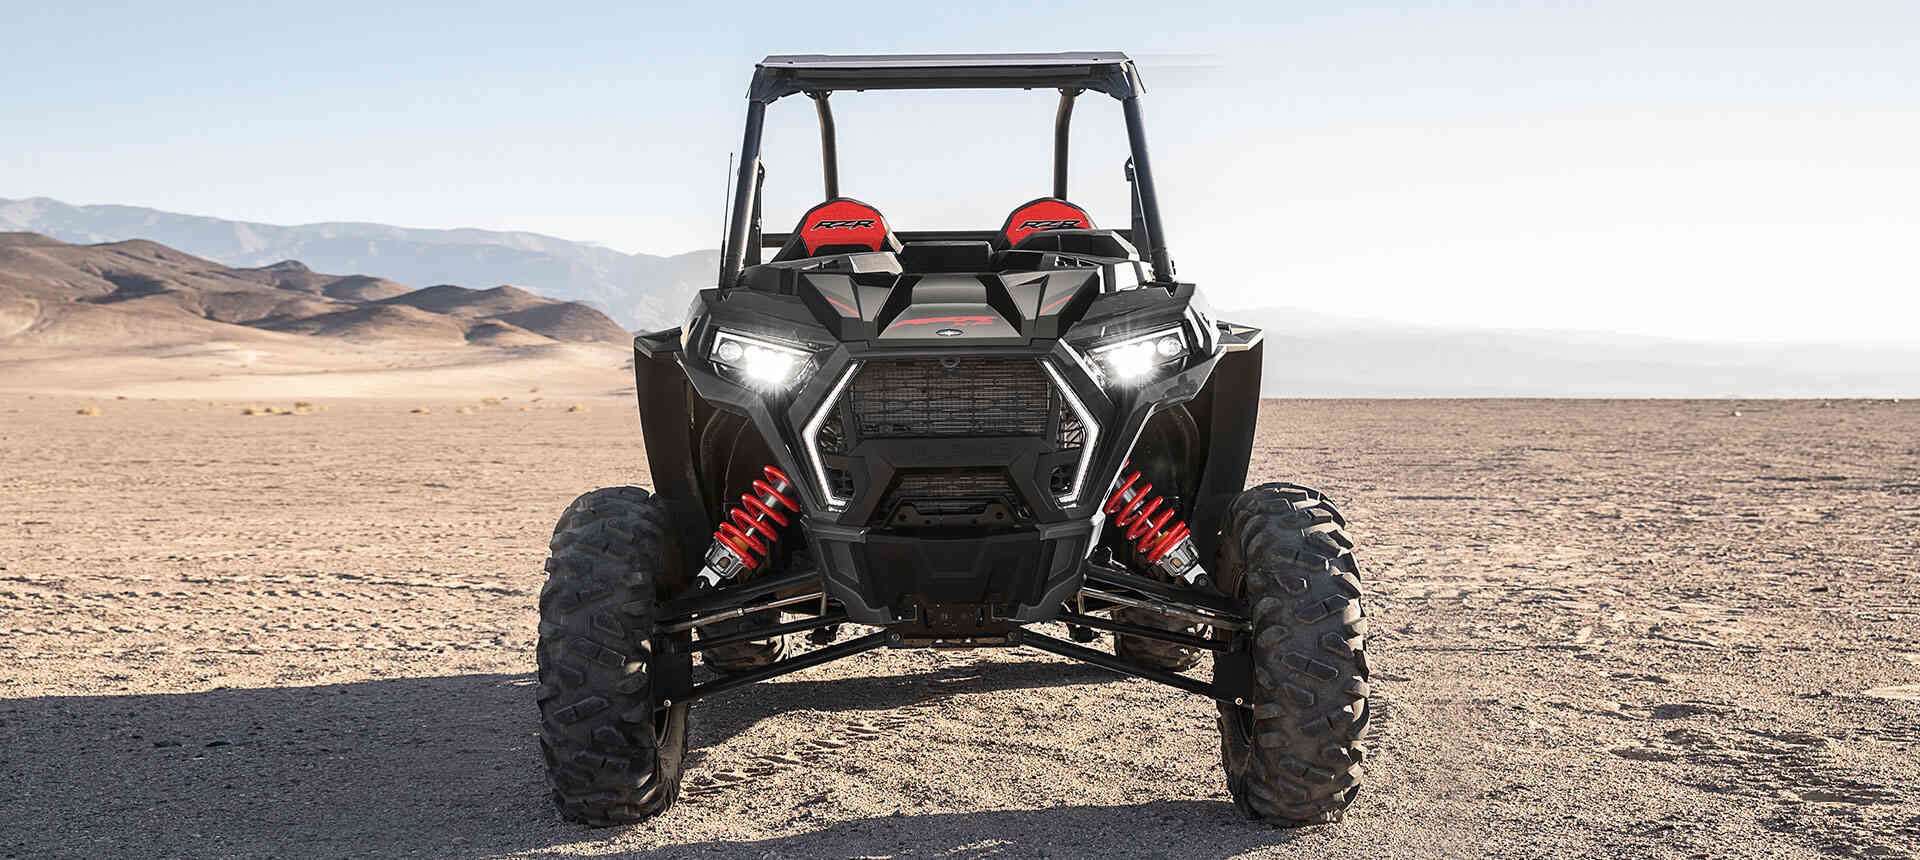 2020 RZR® XP 4 1000 Limited Edition Instagram image 16